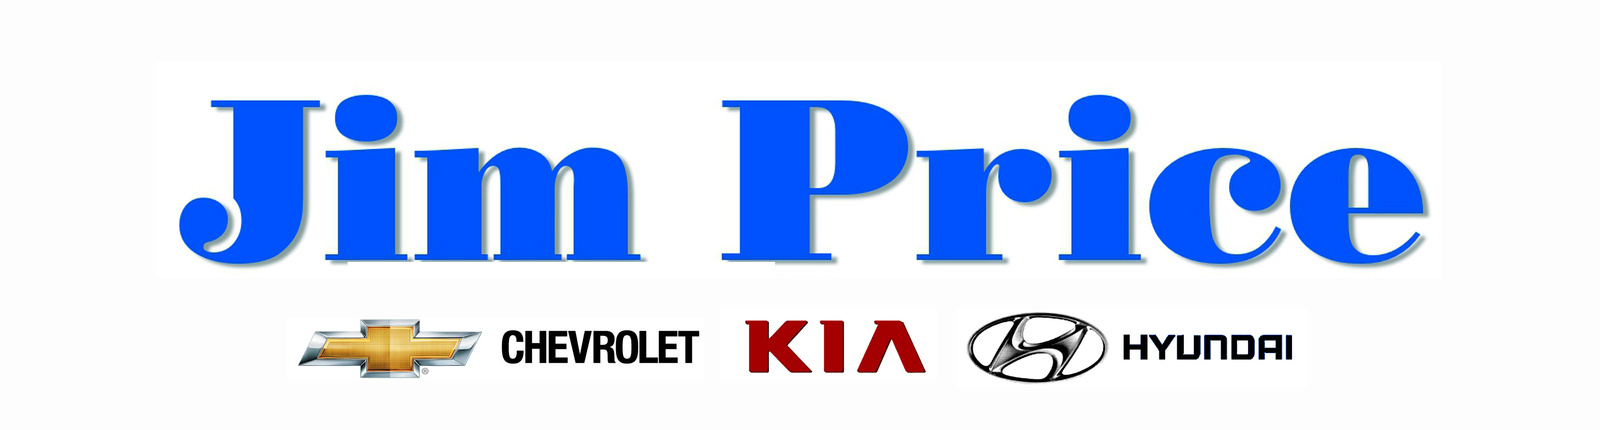 Audi Richmond Va >> Jim Price Automotive - Charlottesville, VA: Read Consumer reviews, Browse Used and New Cars for Sale